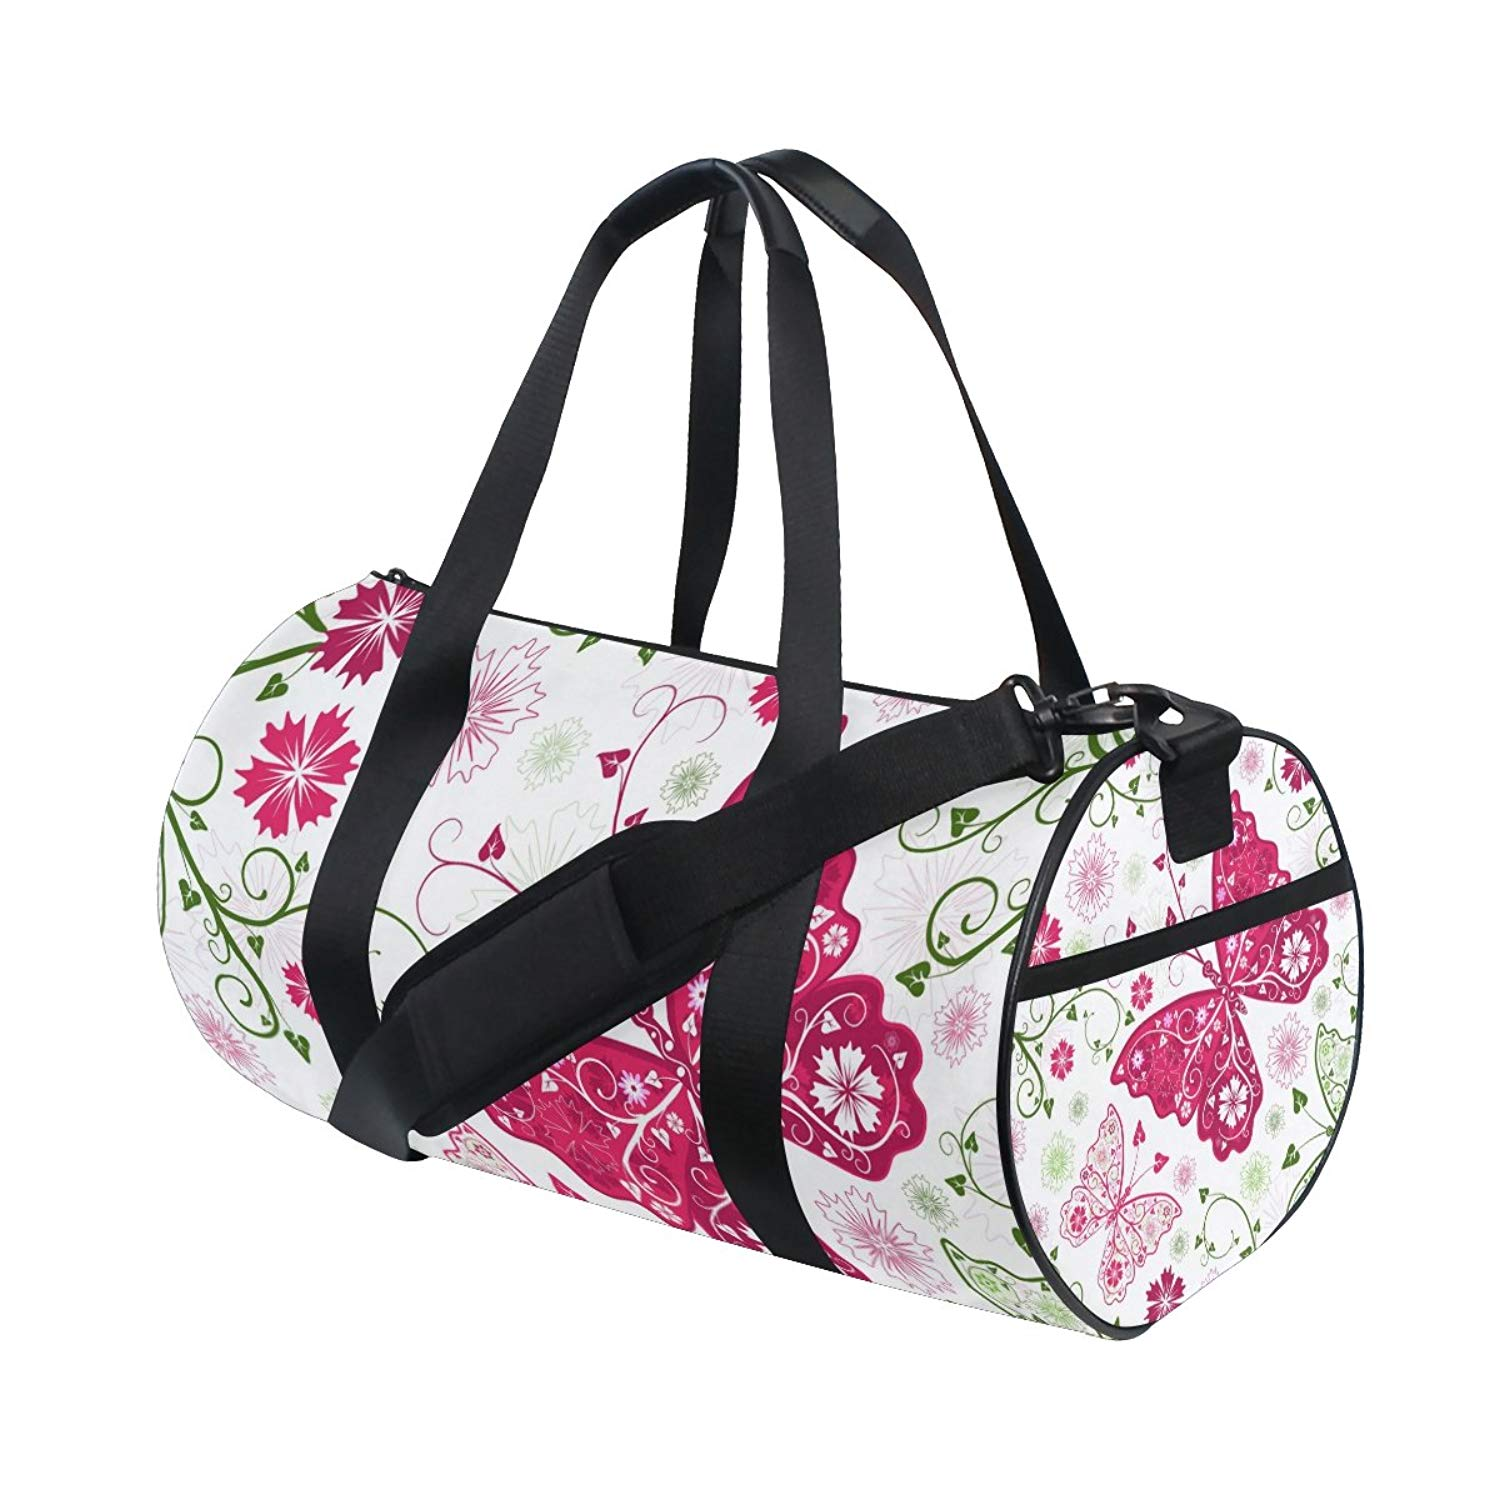 af5896084a50 Cheap Floral Duffle Bag, find Floral Duffle Bag deals on line at ...